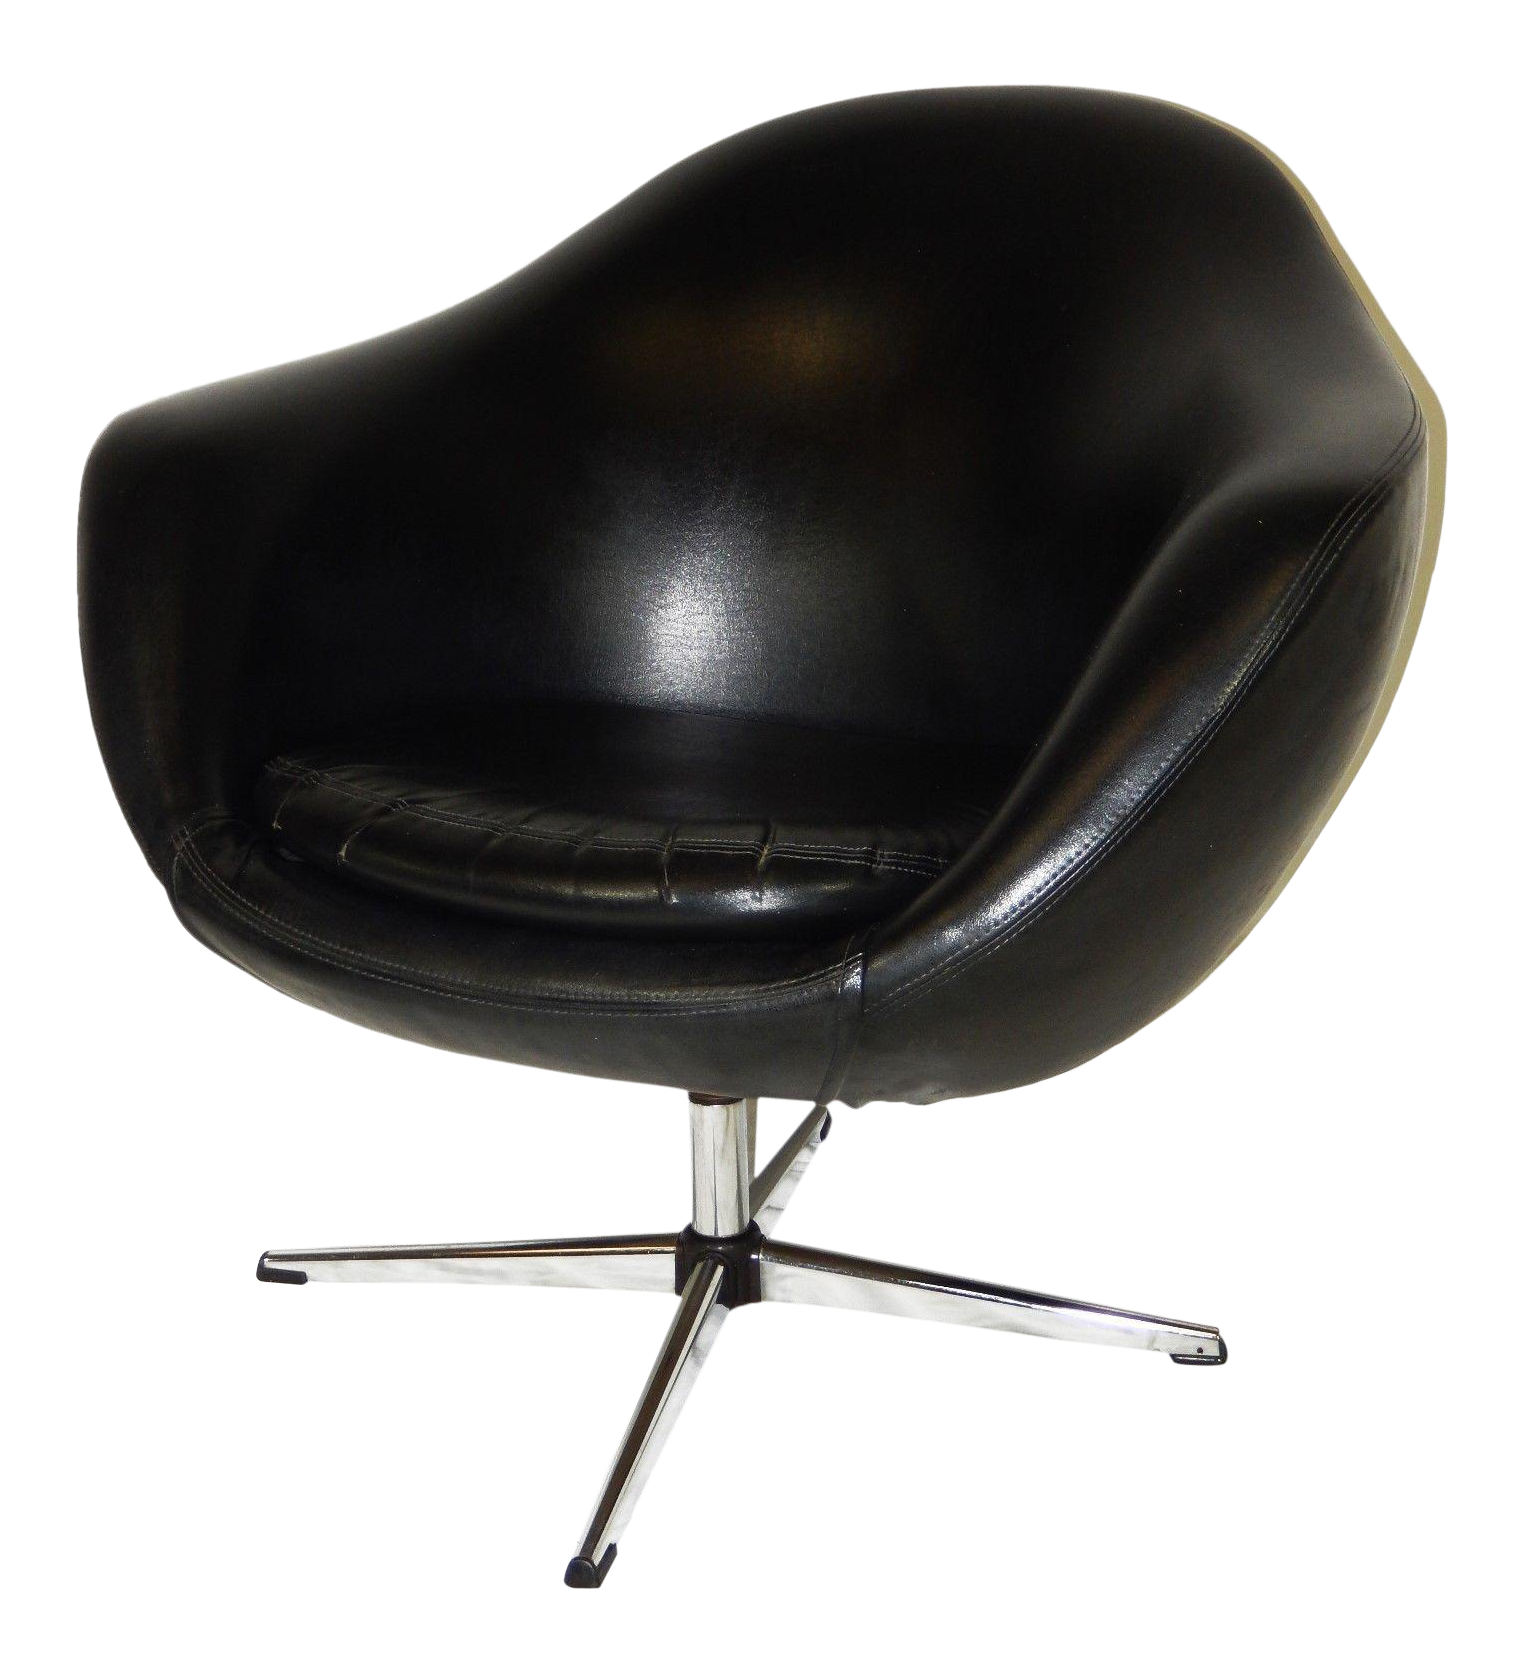 Overman Mid Century Modern Black Vinyl Pod Chair Chairish